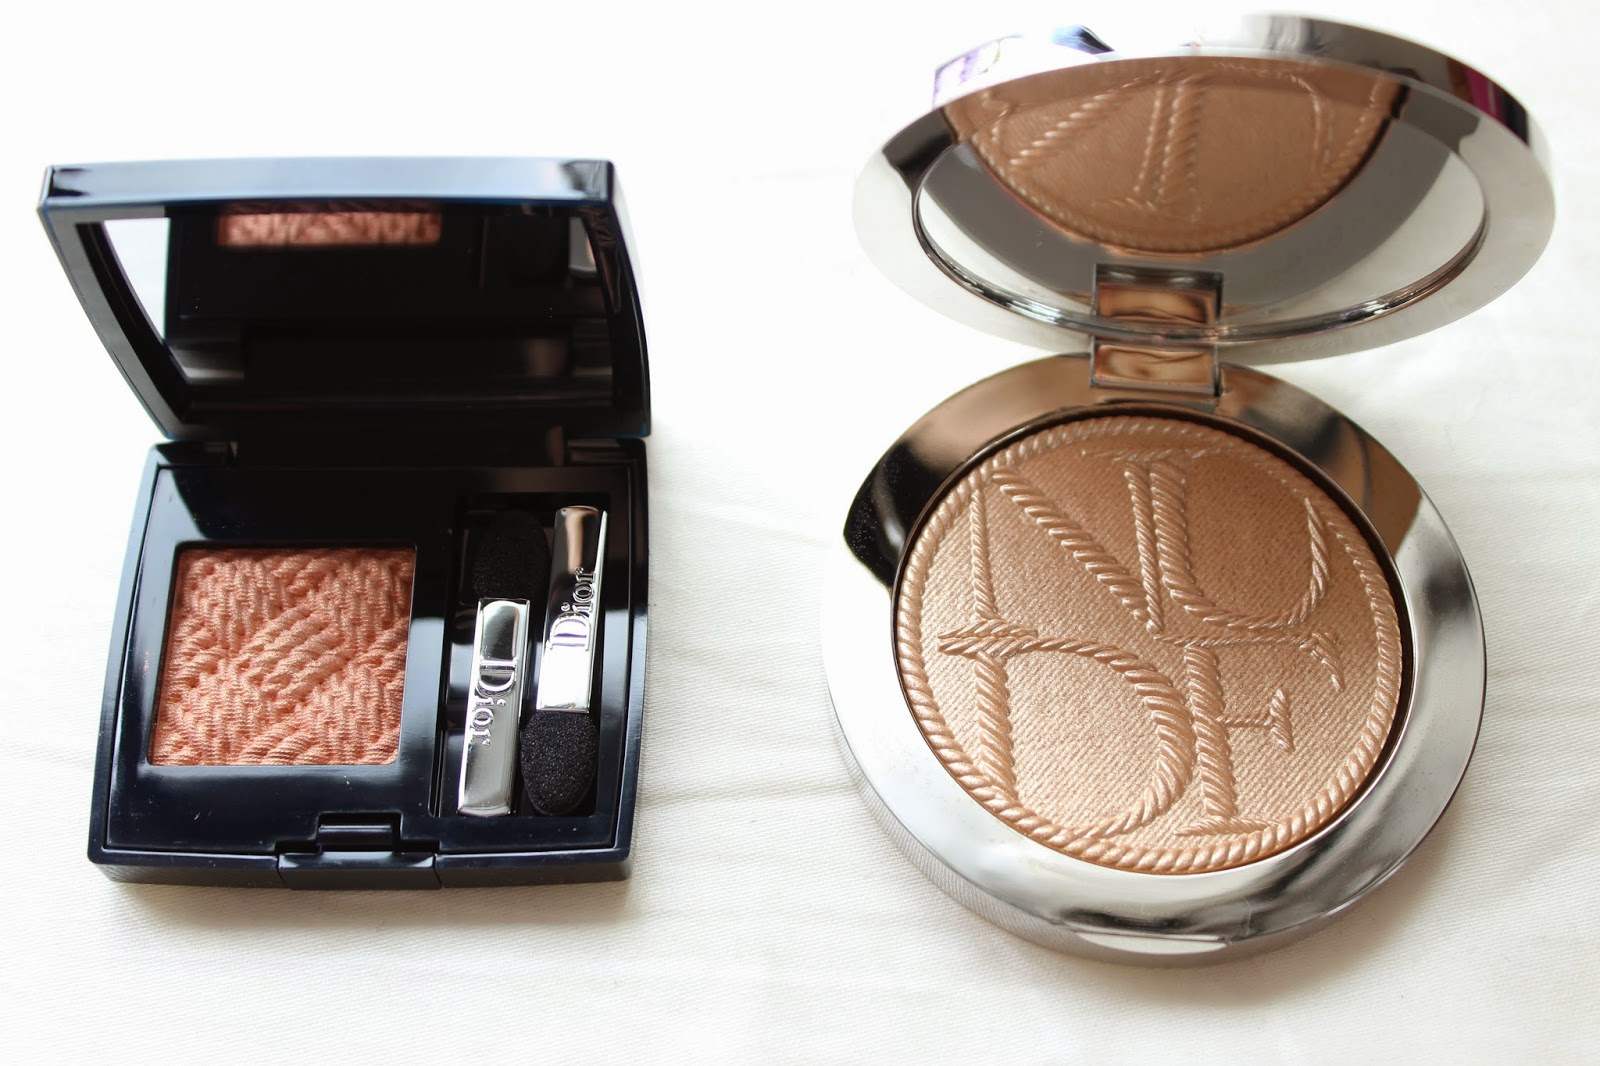 DIOR Transat Collection Summer 2014